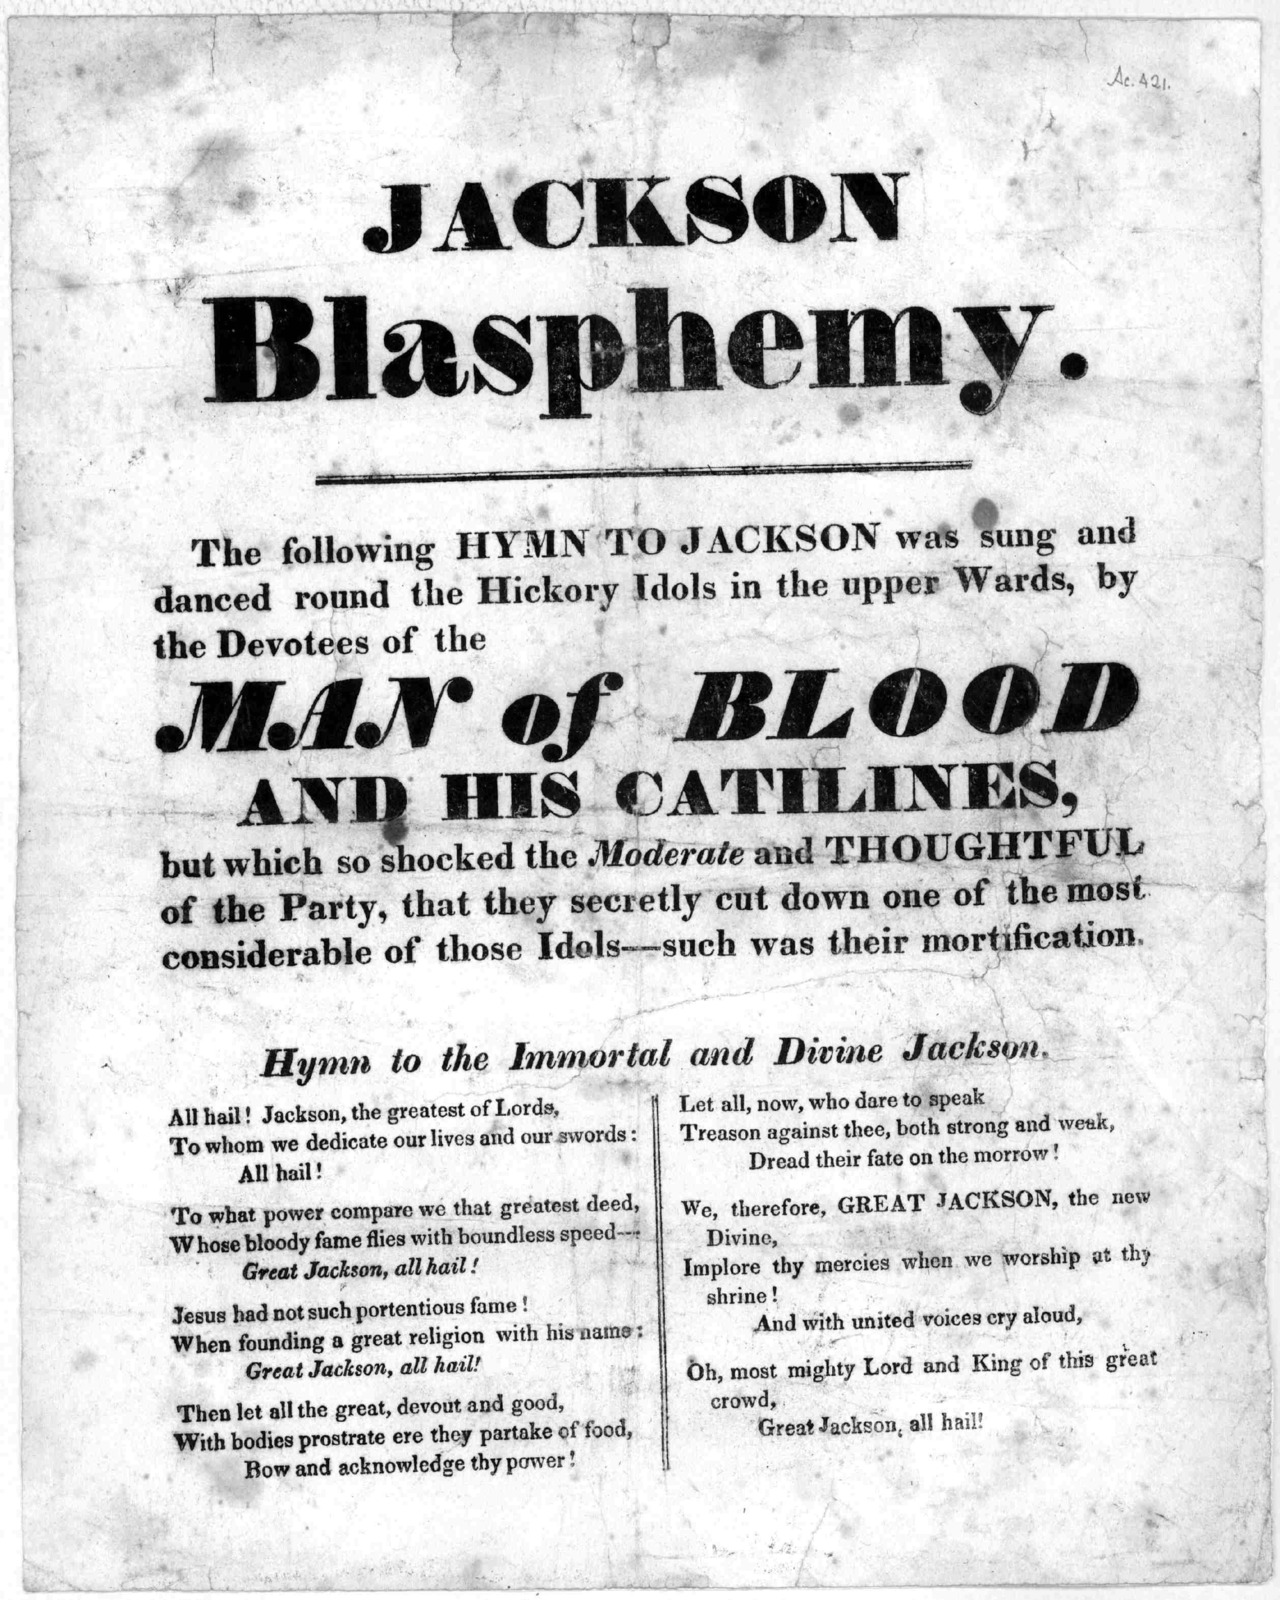 Jackson blasphemy. The following hymn to Jackson was sung and danced round the Hickory idols in the upper wards by the devotees of the man of blood and his catilines ... Hymn to the Immortal and Divine Jackson [1825?].